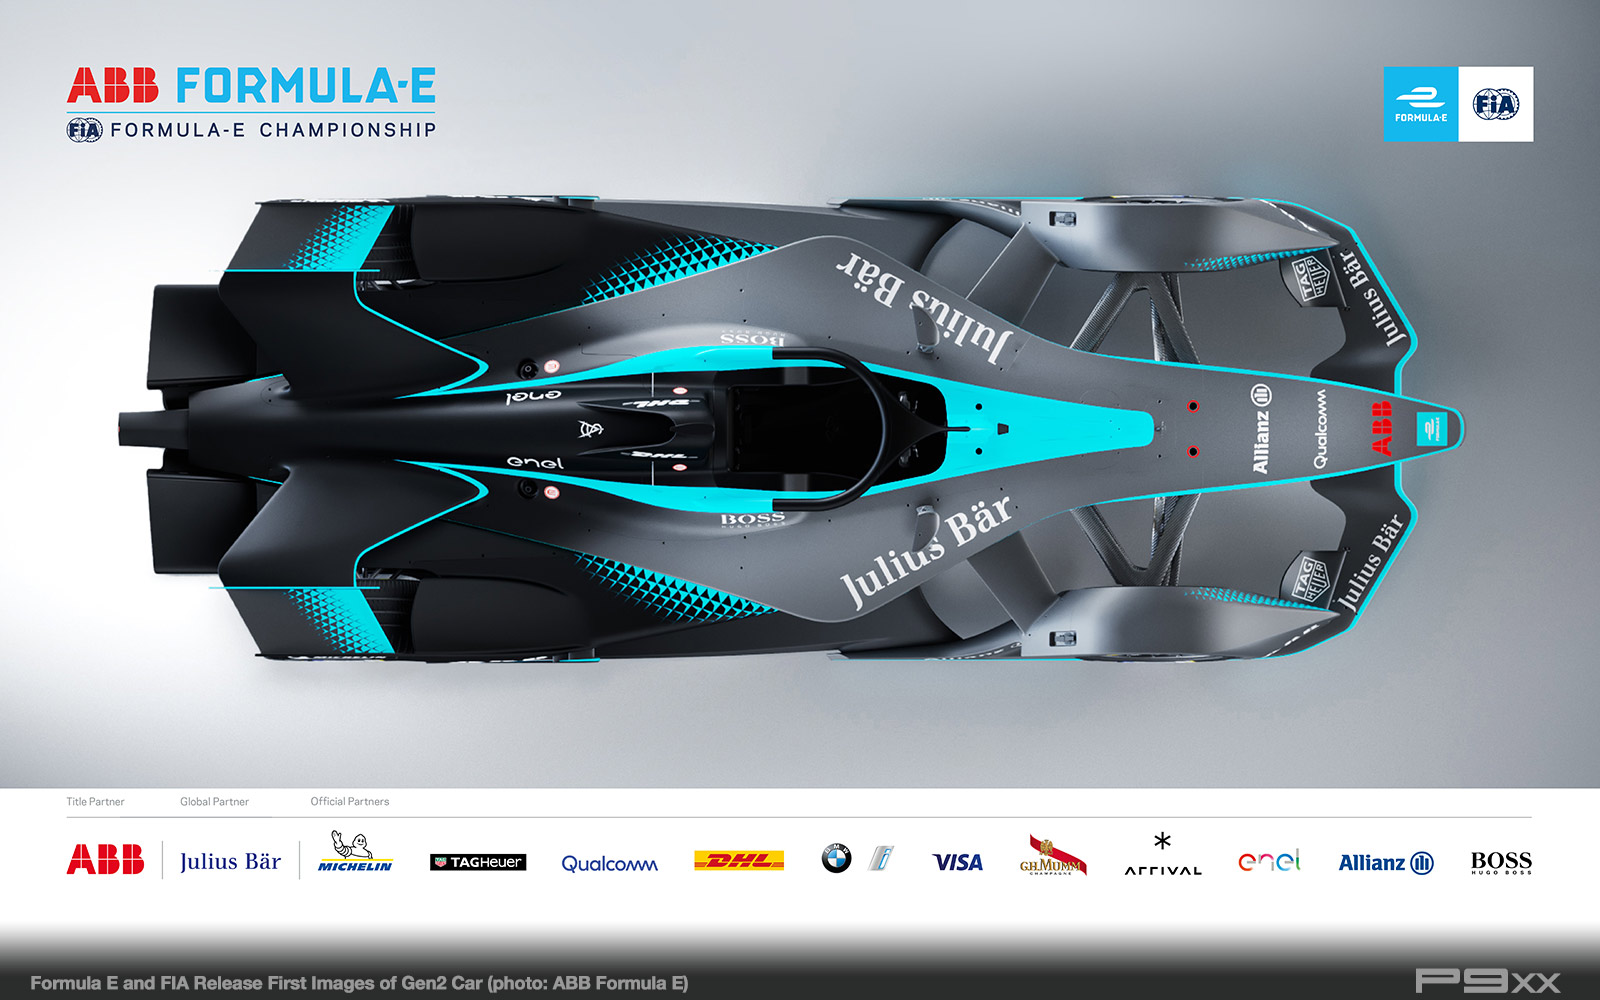 E Car >> Gen2 Formula E Car Design Revealed – P9XX